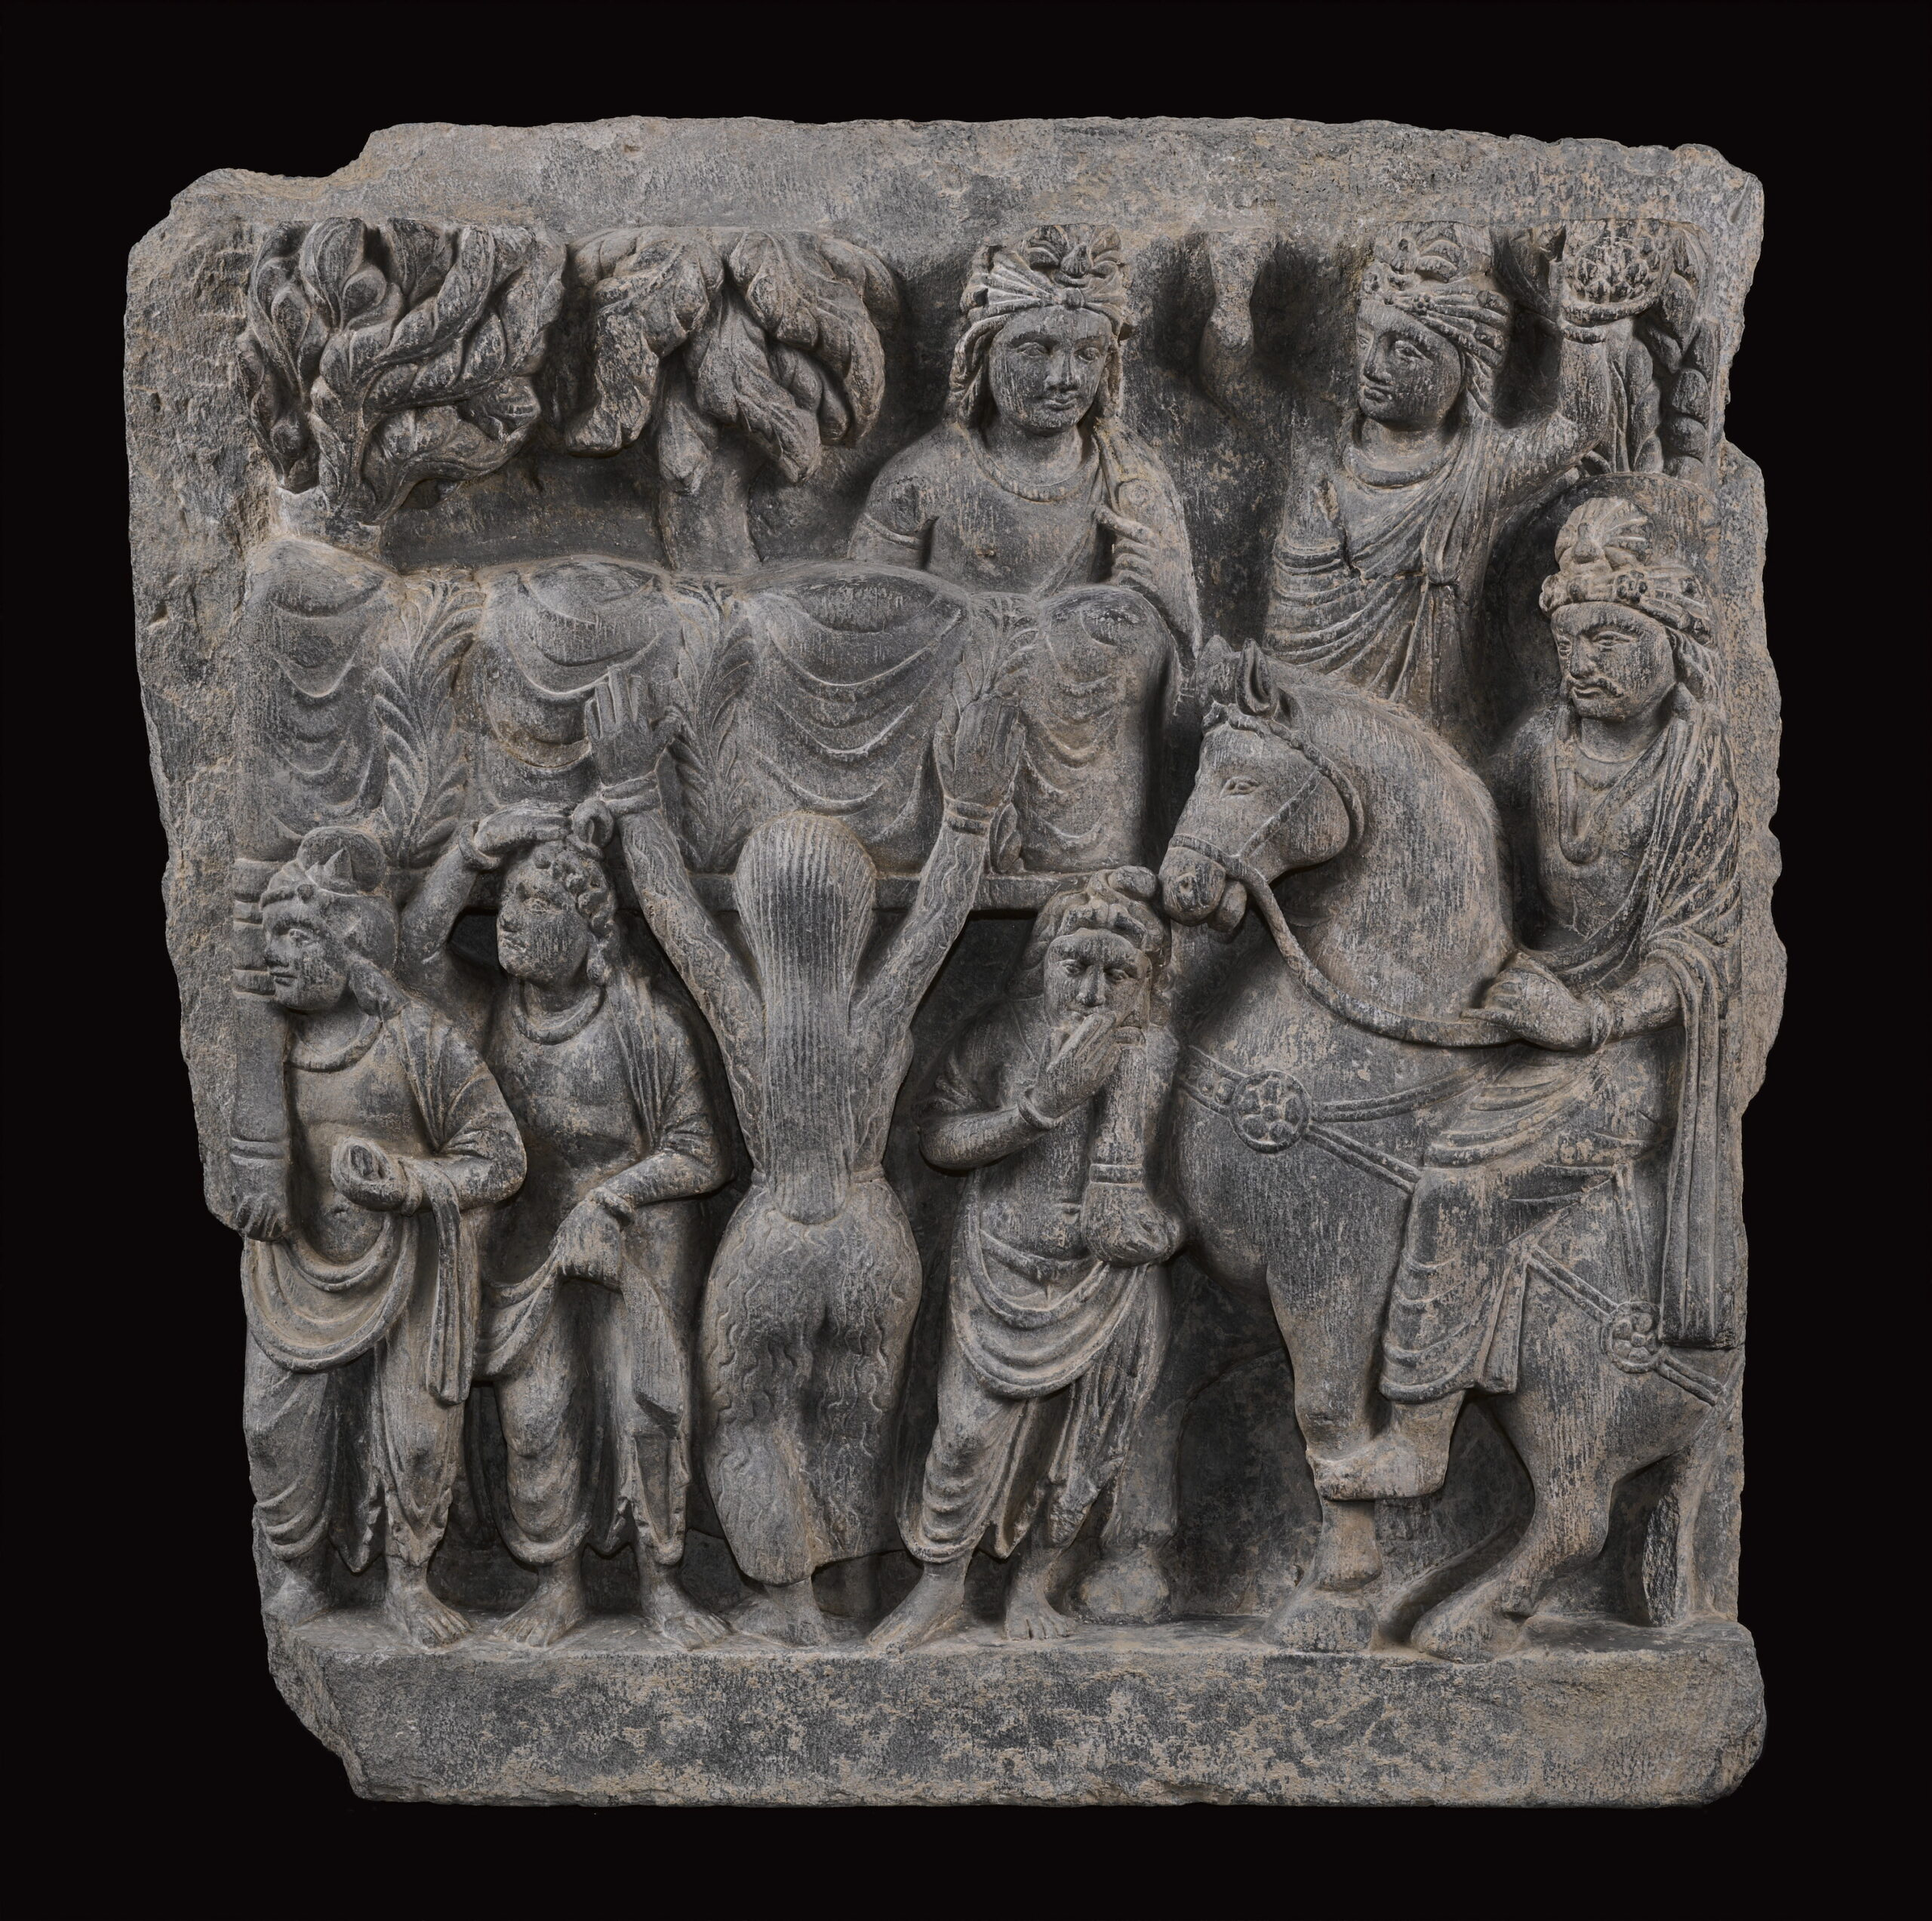 Gandharan narrative frieze, late 1st/2nd century, 40cm high